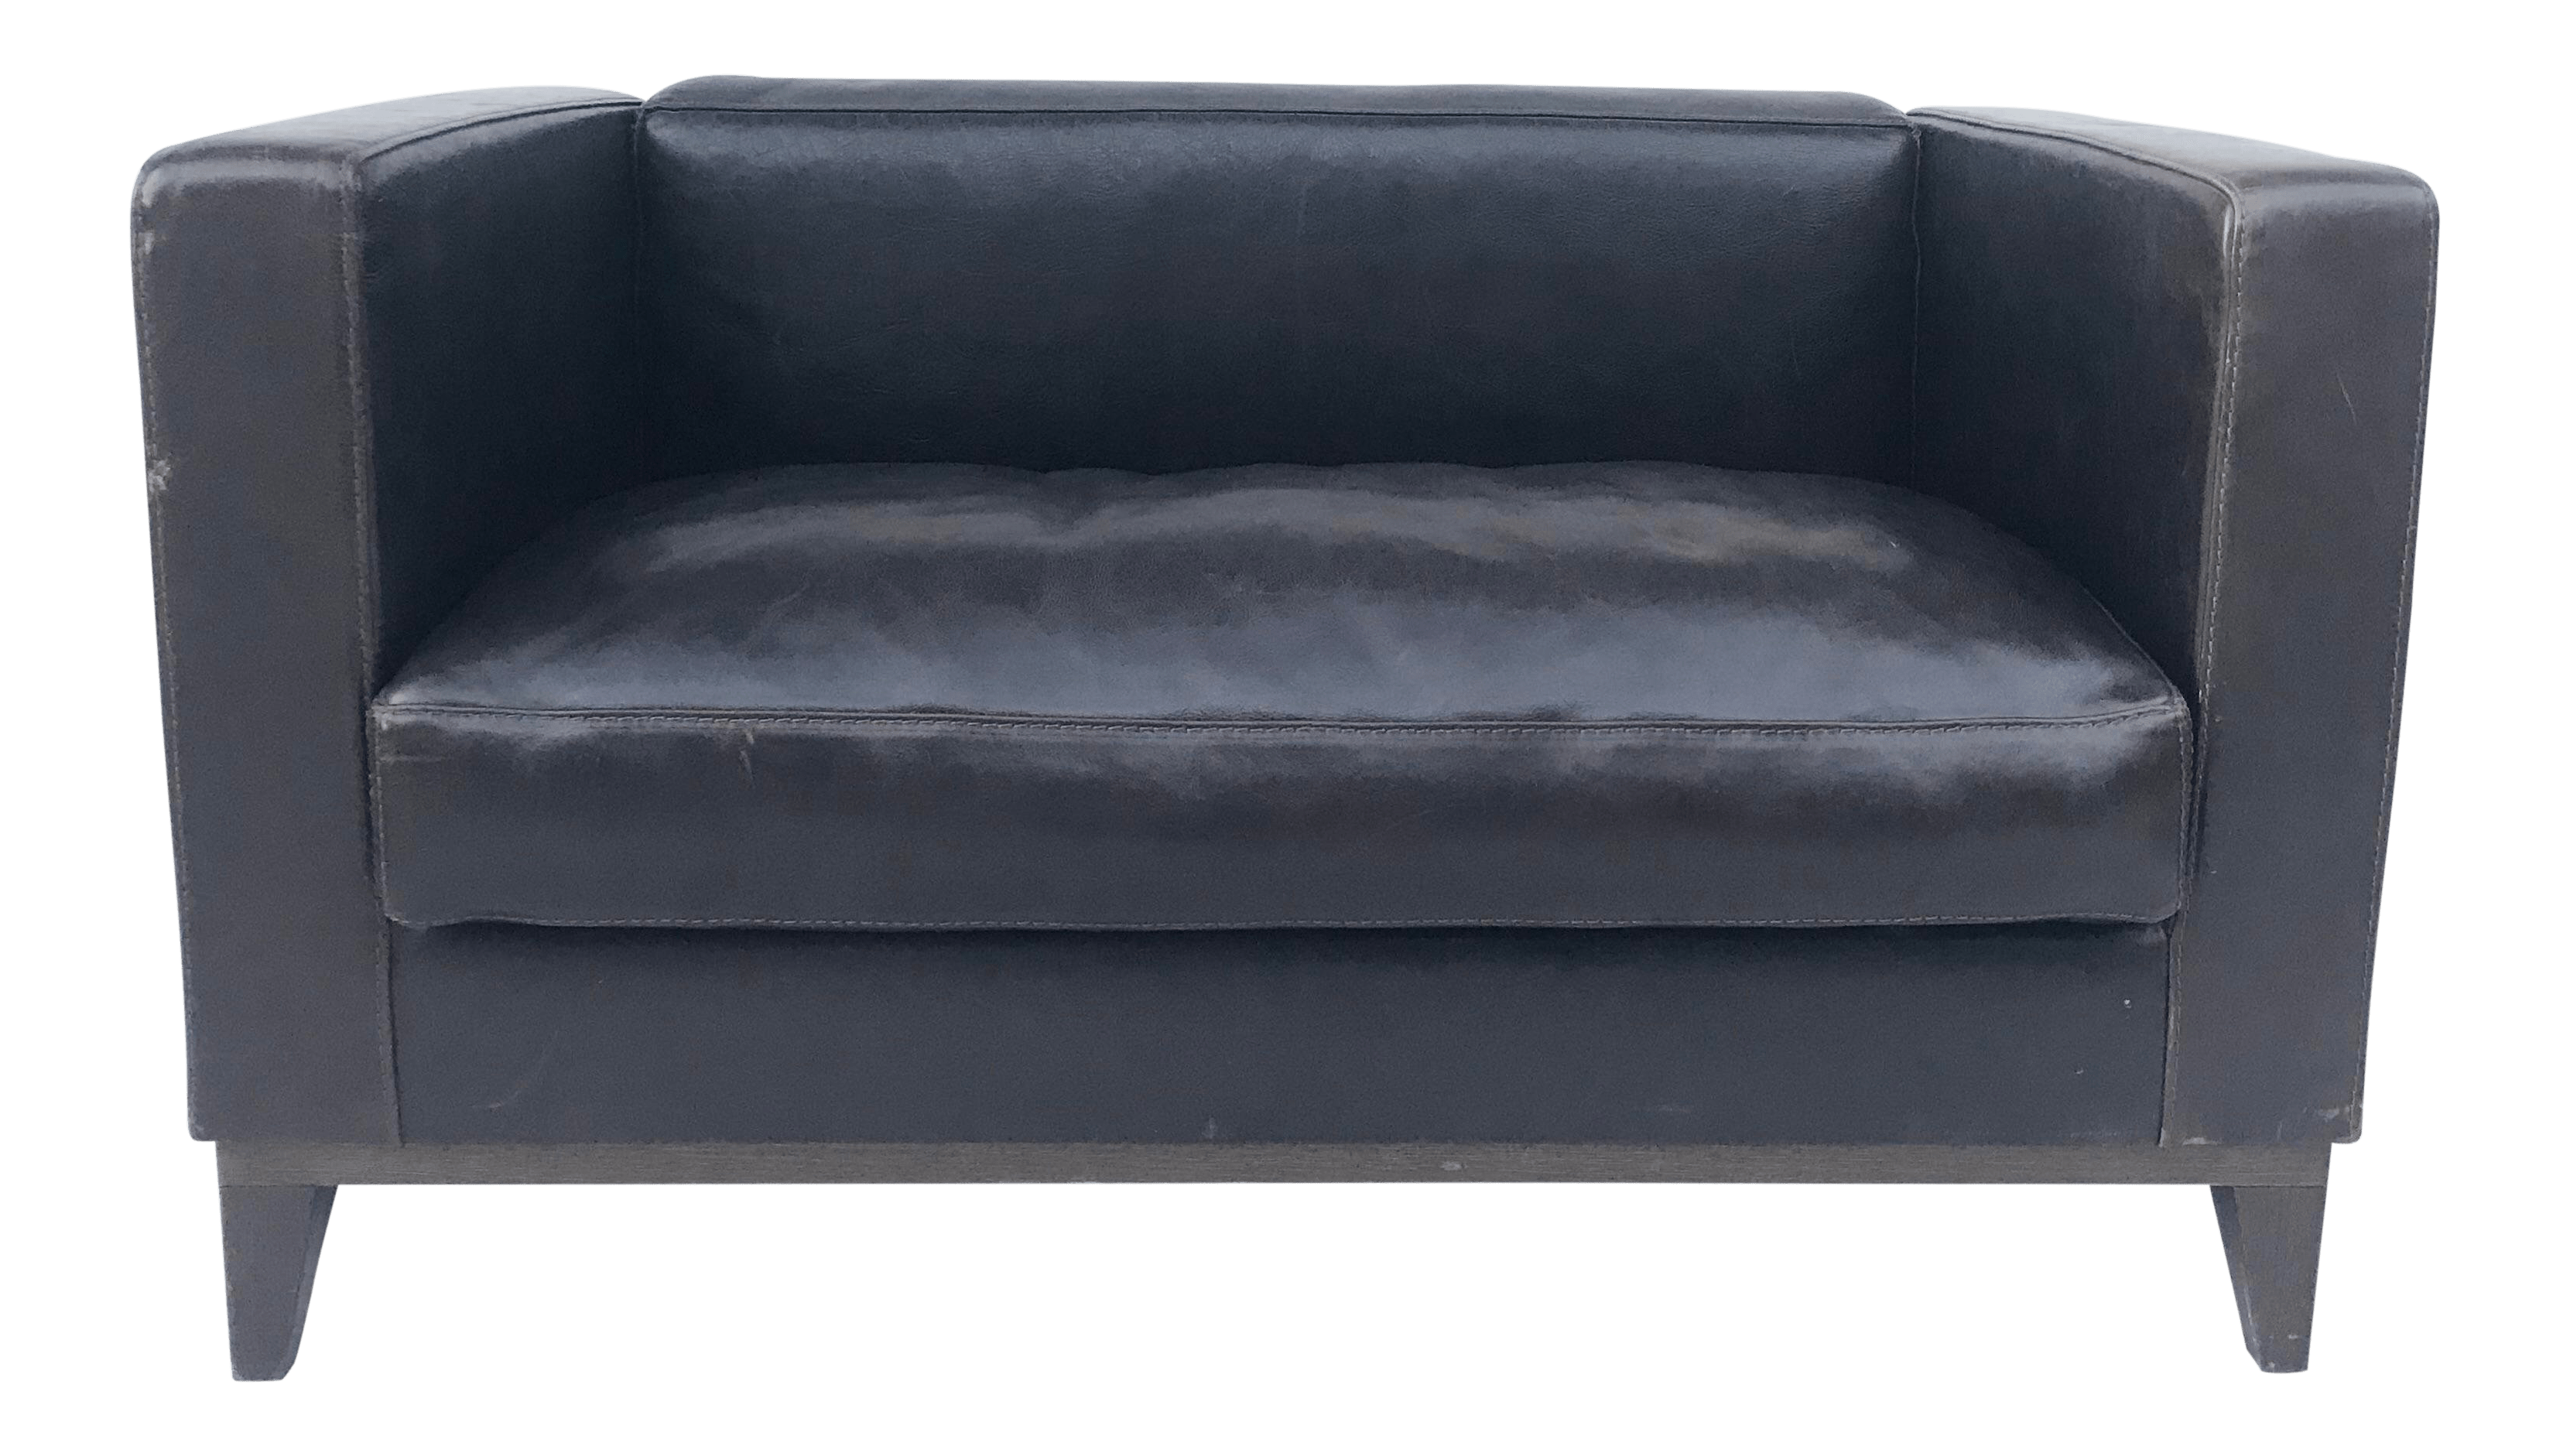 Settee Loveseat Late 20th Century Vintage Lambert Chocolate Leather Settee Loveseat Sofa